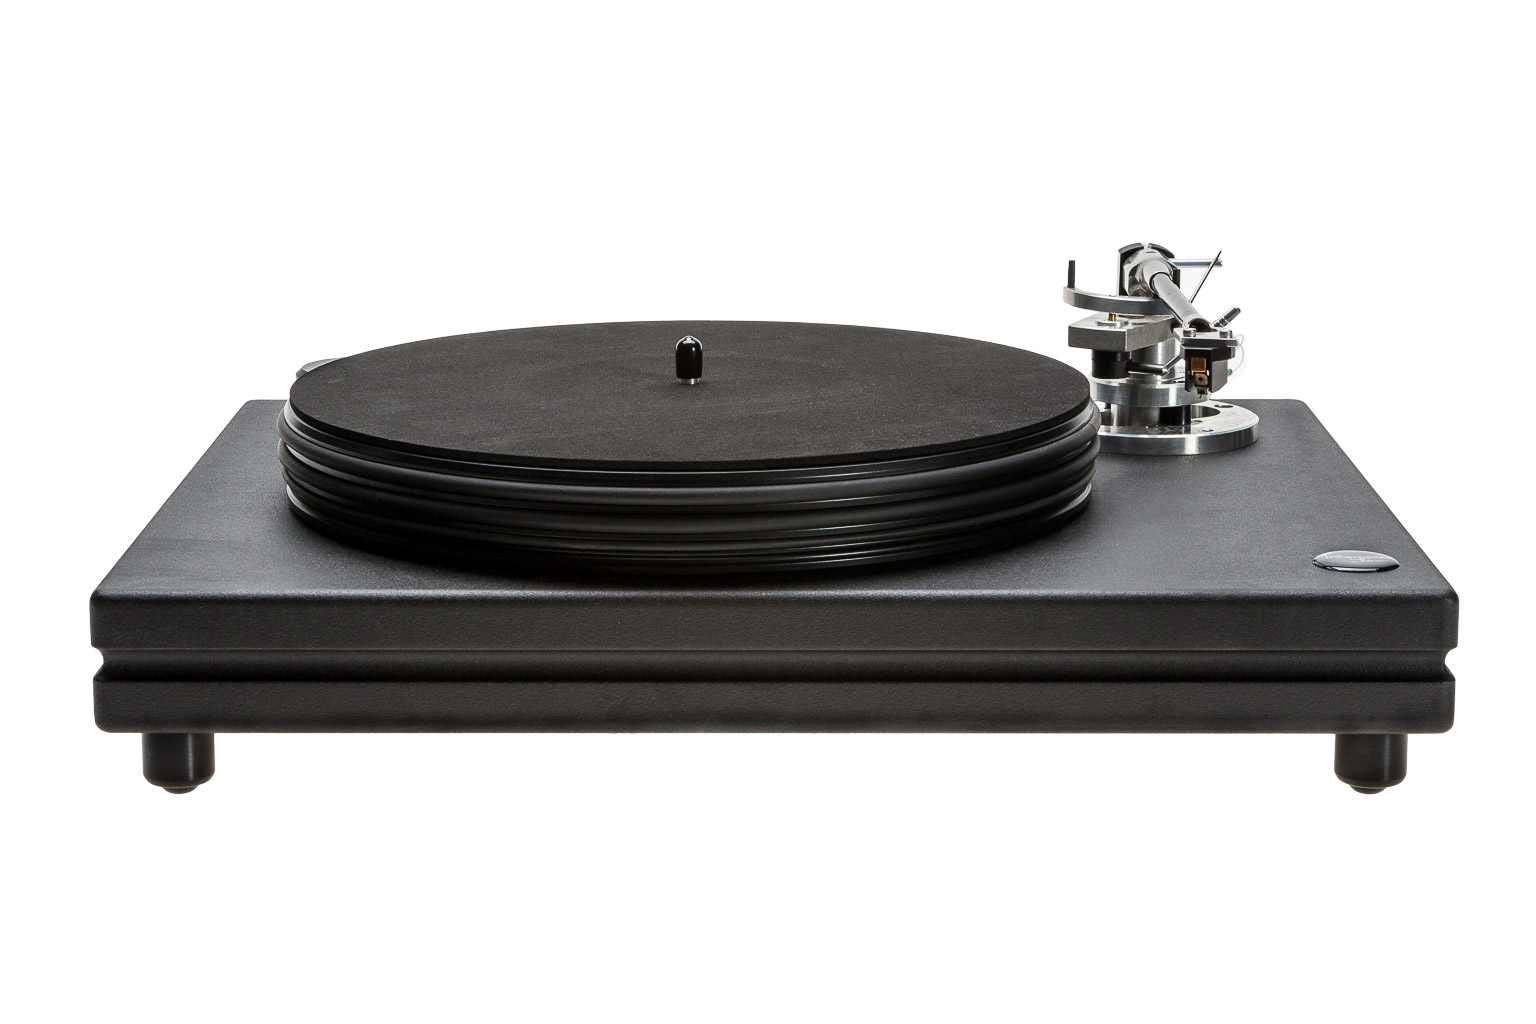 Nottingham Interspace Jr Turntable Image